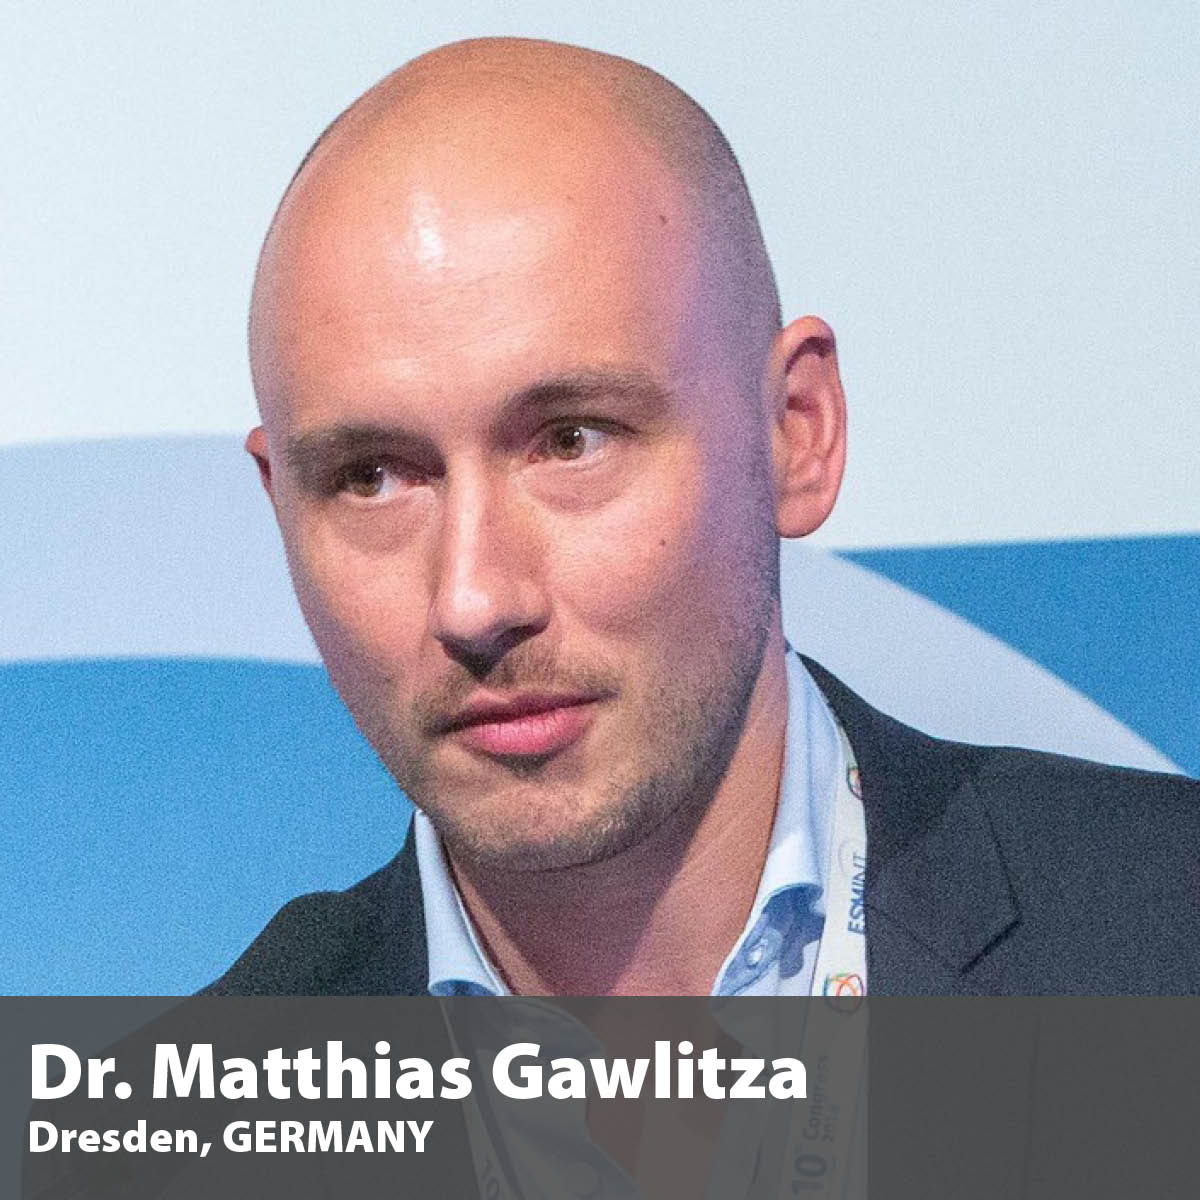 Matthias Gawlitza part of the EYMINT team